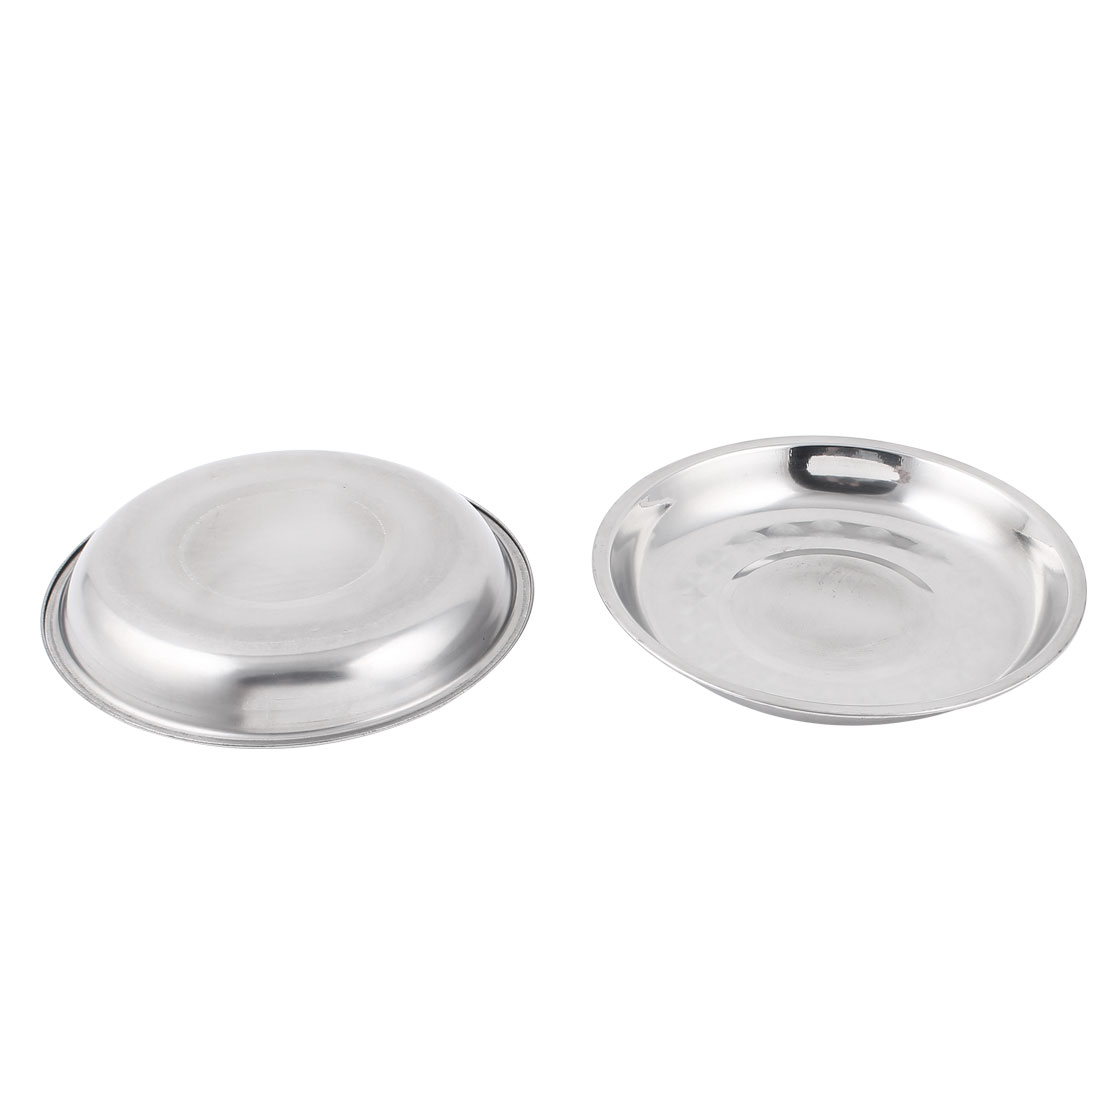 Stainless Steel Kitchen Restaurant Food Water Dishes Bowl 2pcs